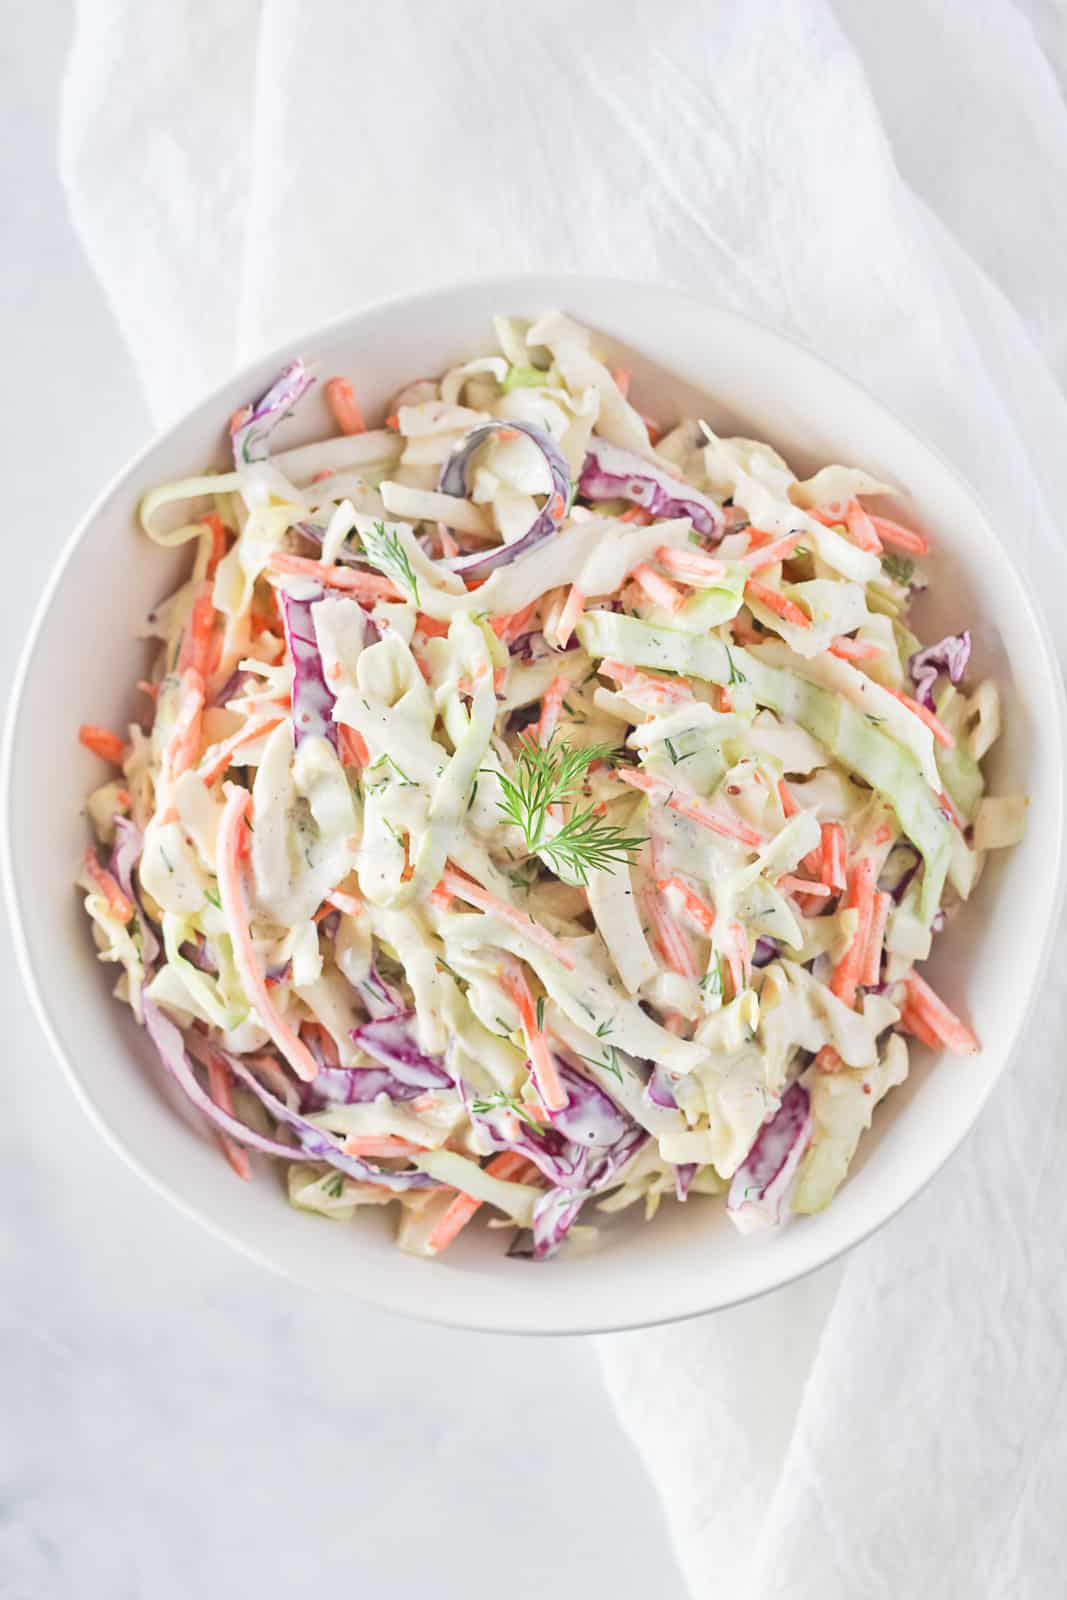 White serving bowl of shredded cabbage and carrot salad.